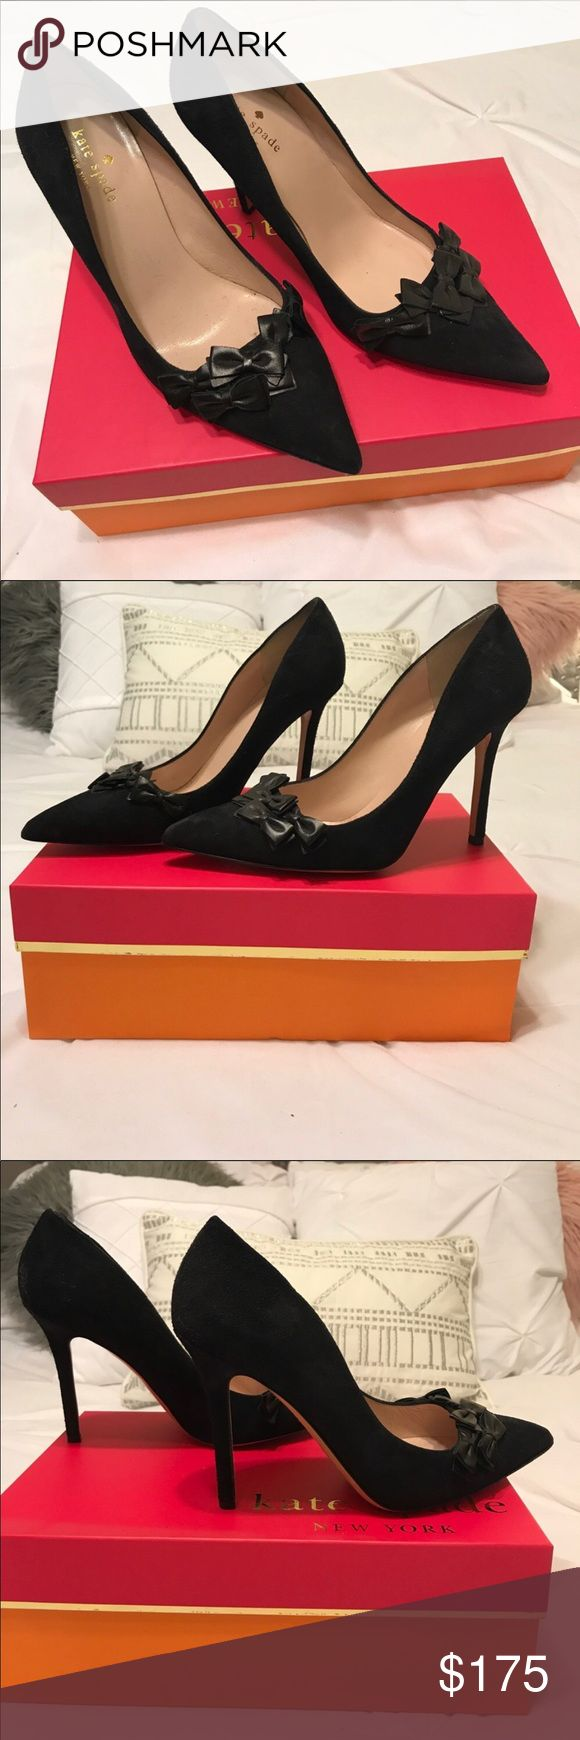 """WILLING TO TRADE - 100% Authentic Kate Spade Heels 100% Authentic Kate Spade 4"""" Heels in a gorgeous Navy color with tiny leather bows - Great Used Condition - Sueded/Leather upper & Leather lining and sole - Comes with original box - Size Stamp 7.5B - I am a true 7.5 US size and these fit me perfectly - My entire closet is up for trade/negotiation. If you would like to exchange any item(s) with me, please feel free to send me a message. Thank you in advance  (Local Pick-Up is available in…"""